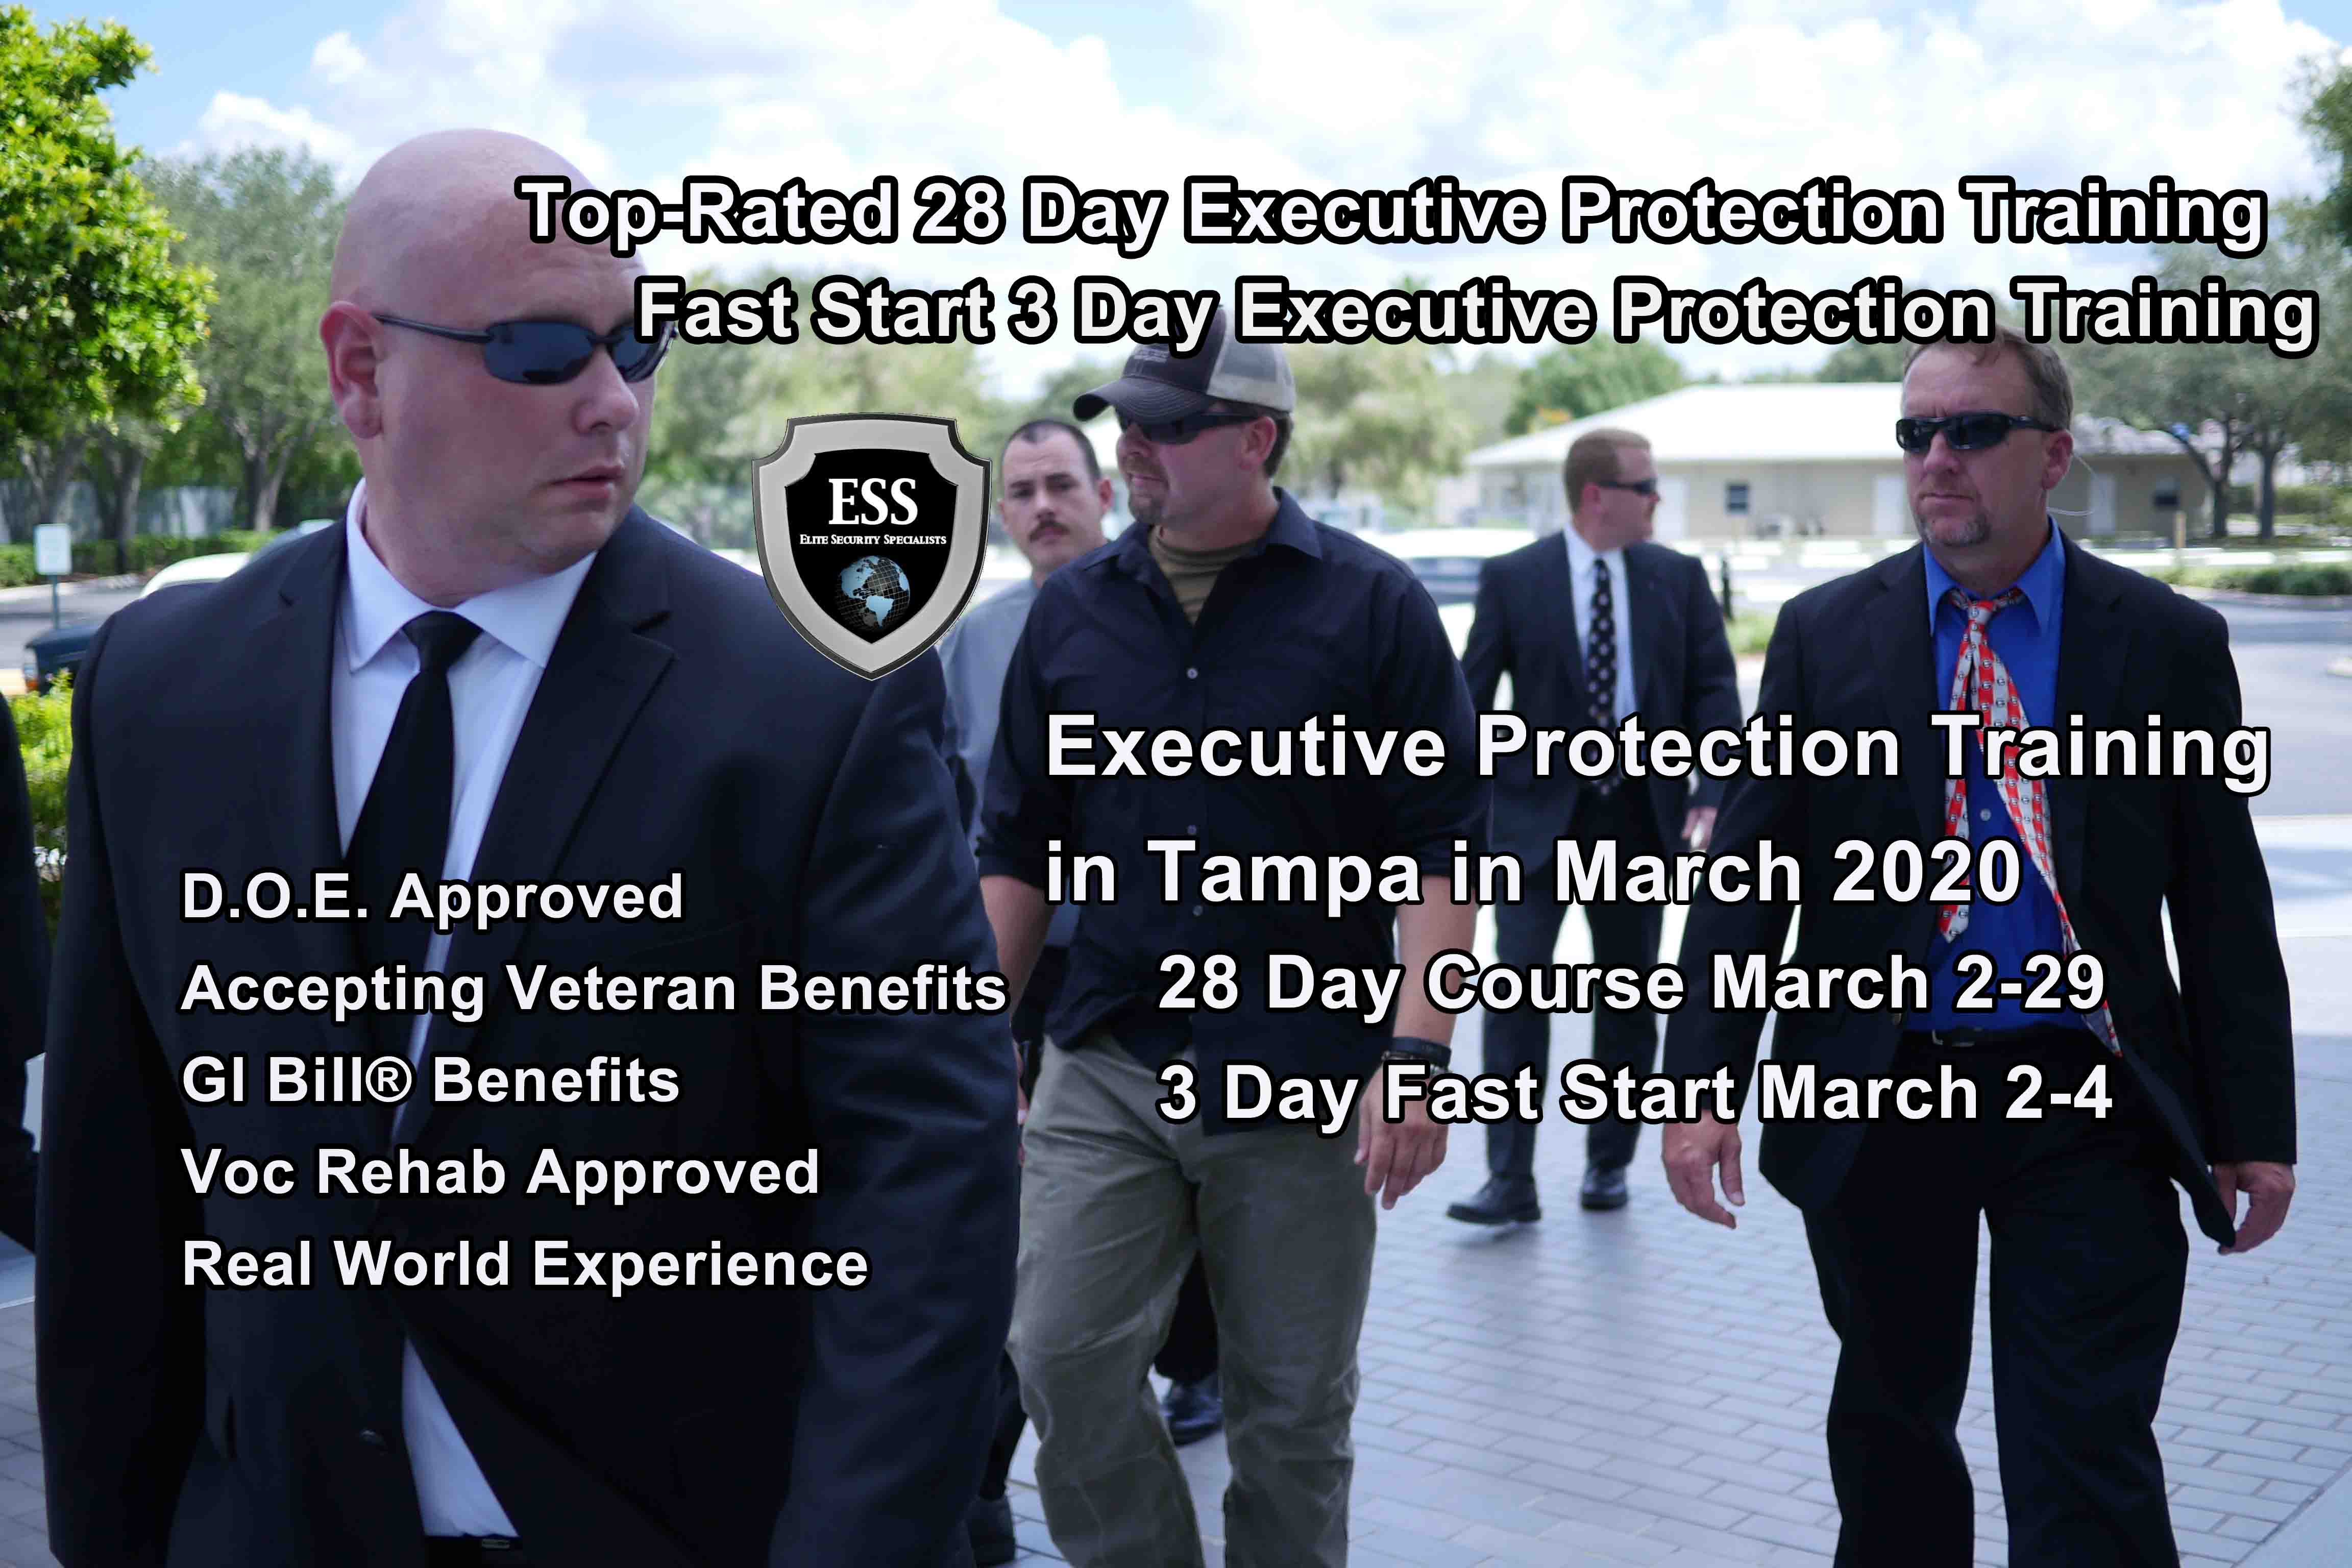 Executive Protection Training - Tampa MARCH